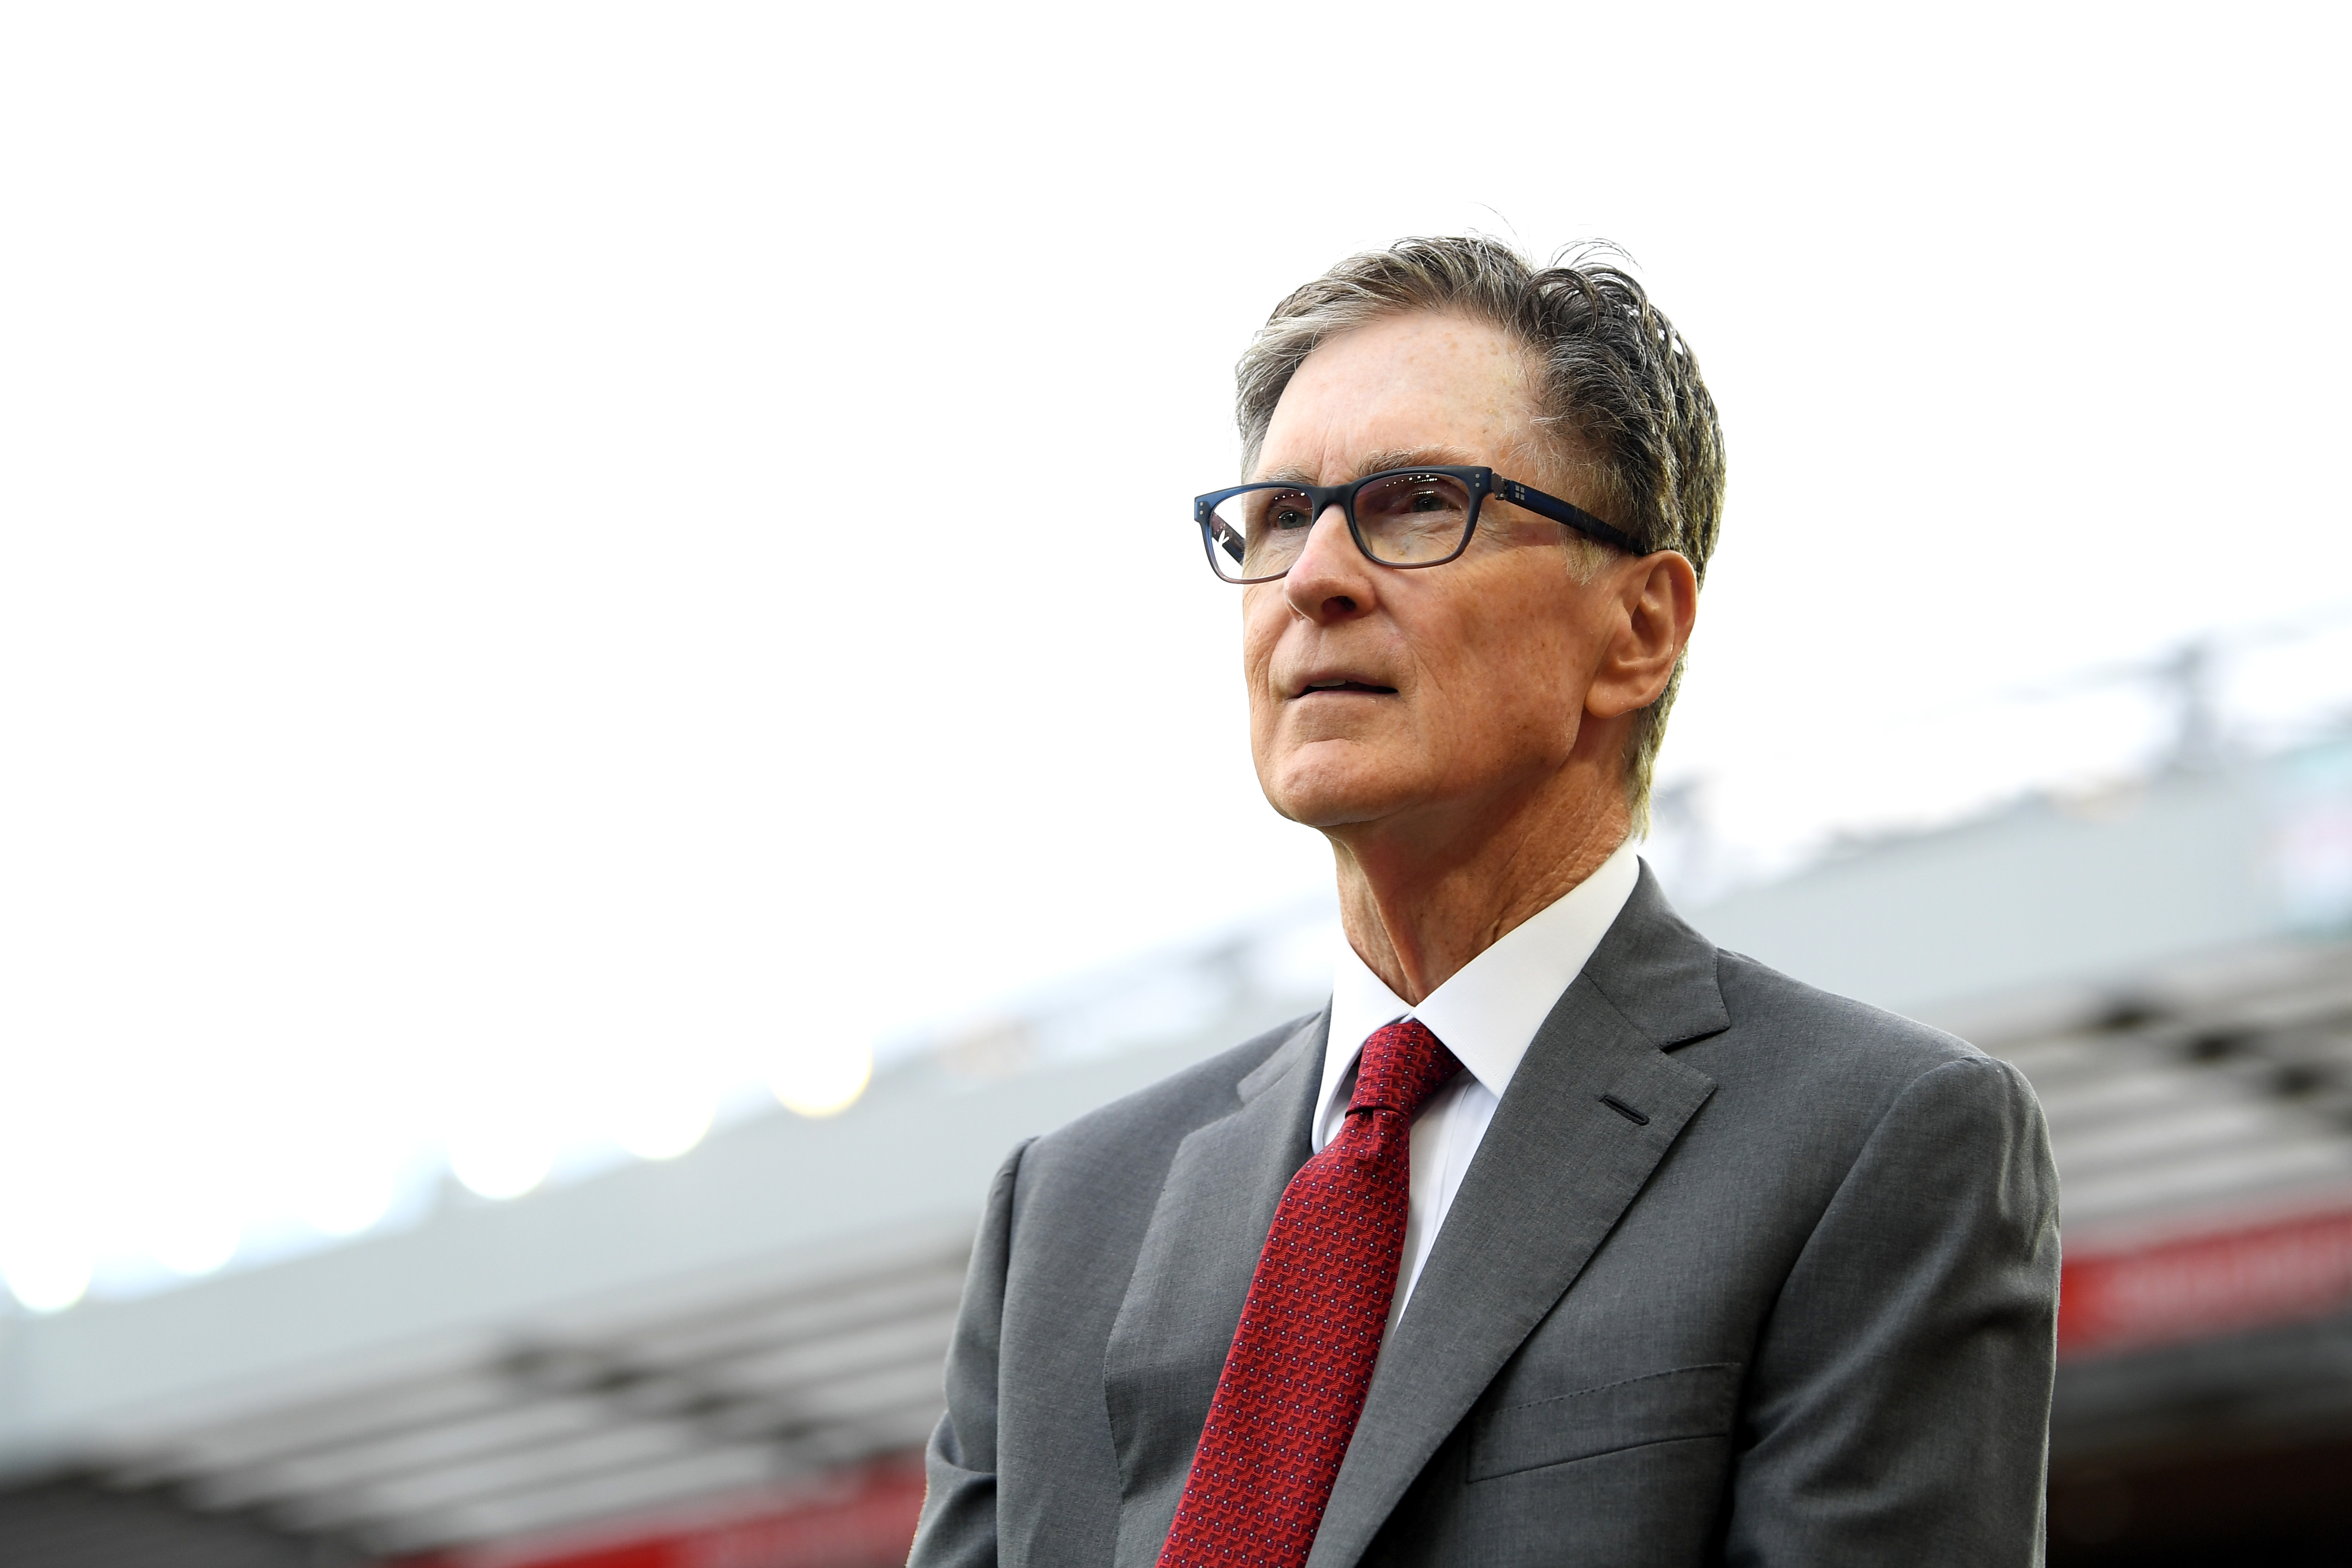 Liverpool owner John W. Henry ahead of the Premier League match between Liverpool FC and Norwich City in 2019.